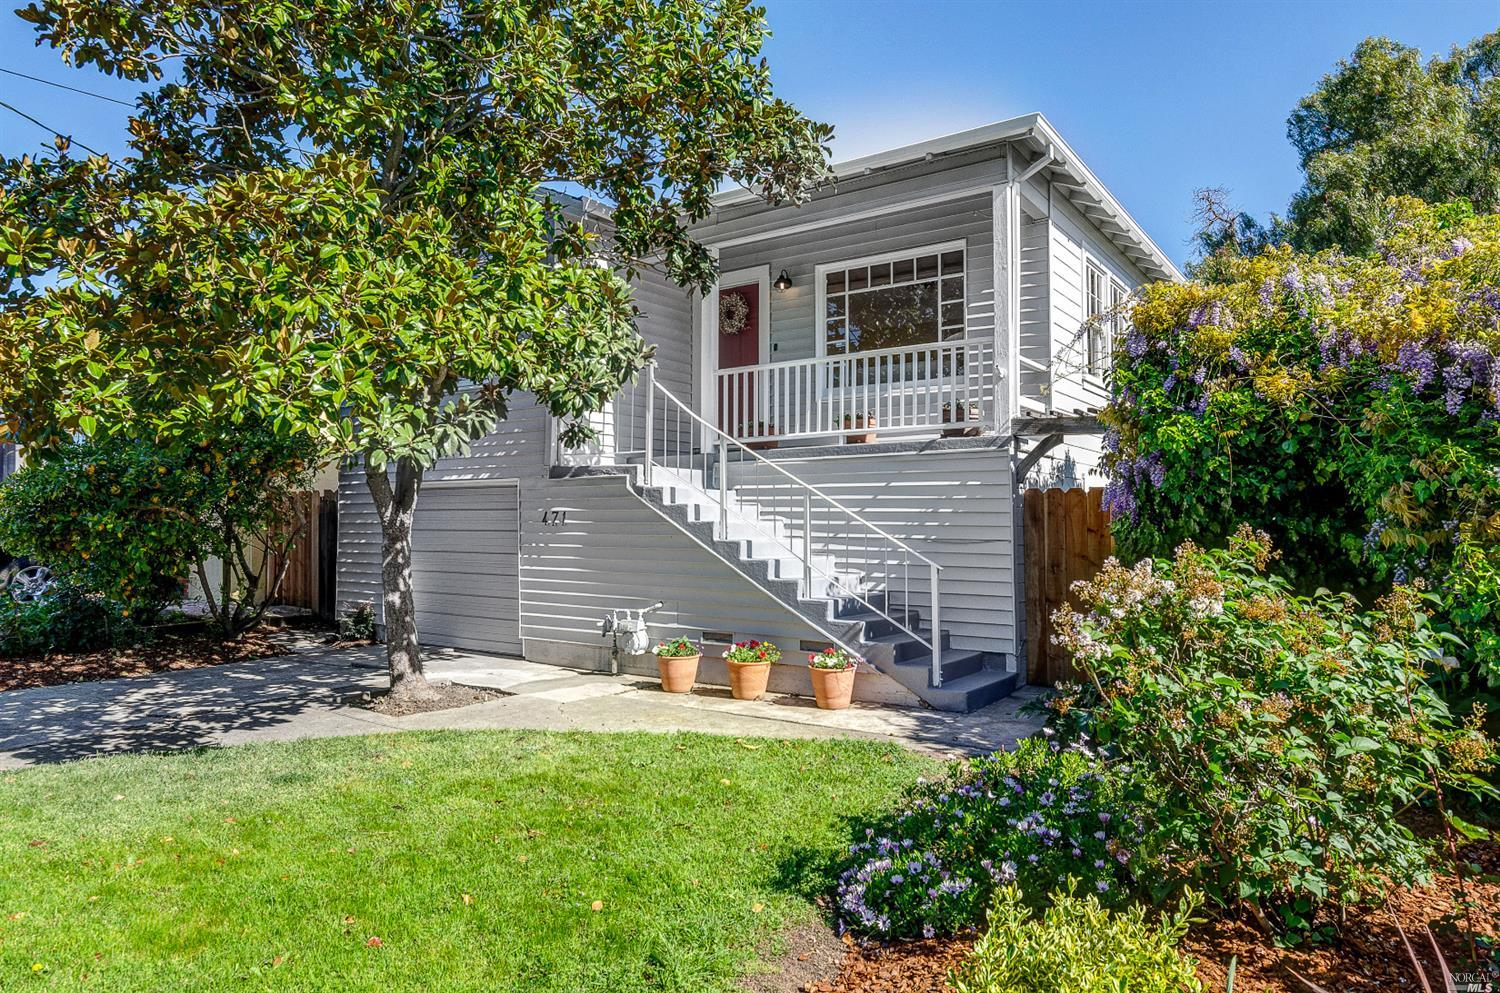 This adorable downtown home is close to schools, shopping, and restaurants. The home has the origina